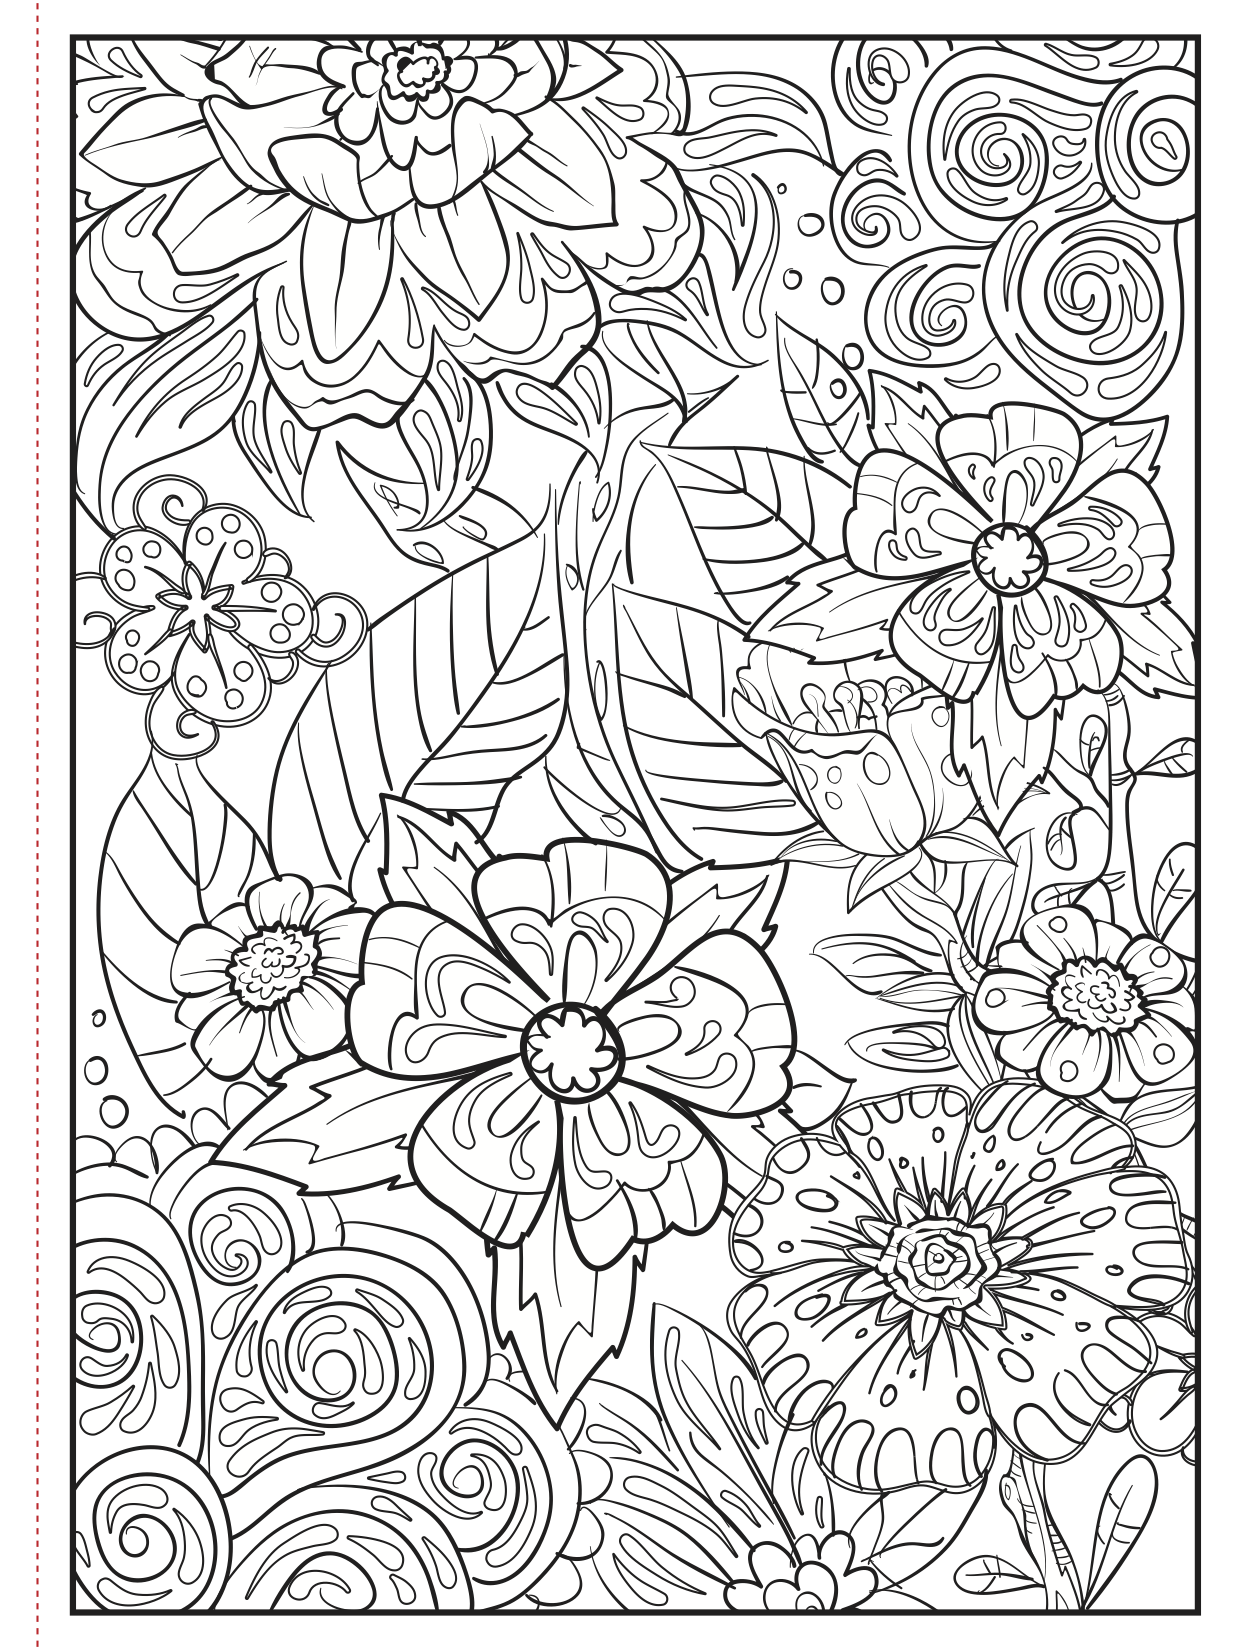 Choose From A Variety Of Free Coloring Pages From Our Coloring Book